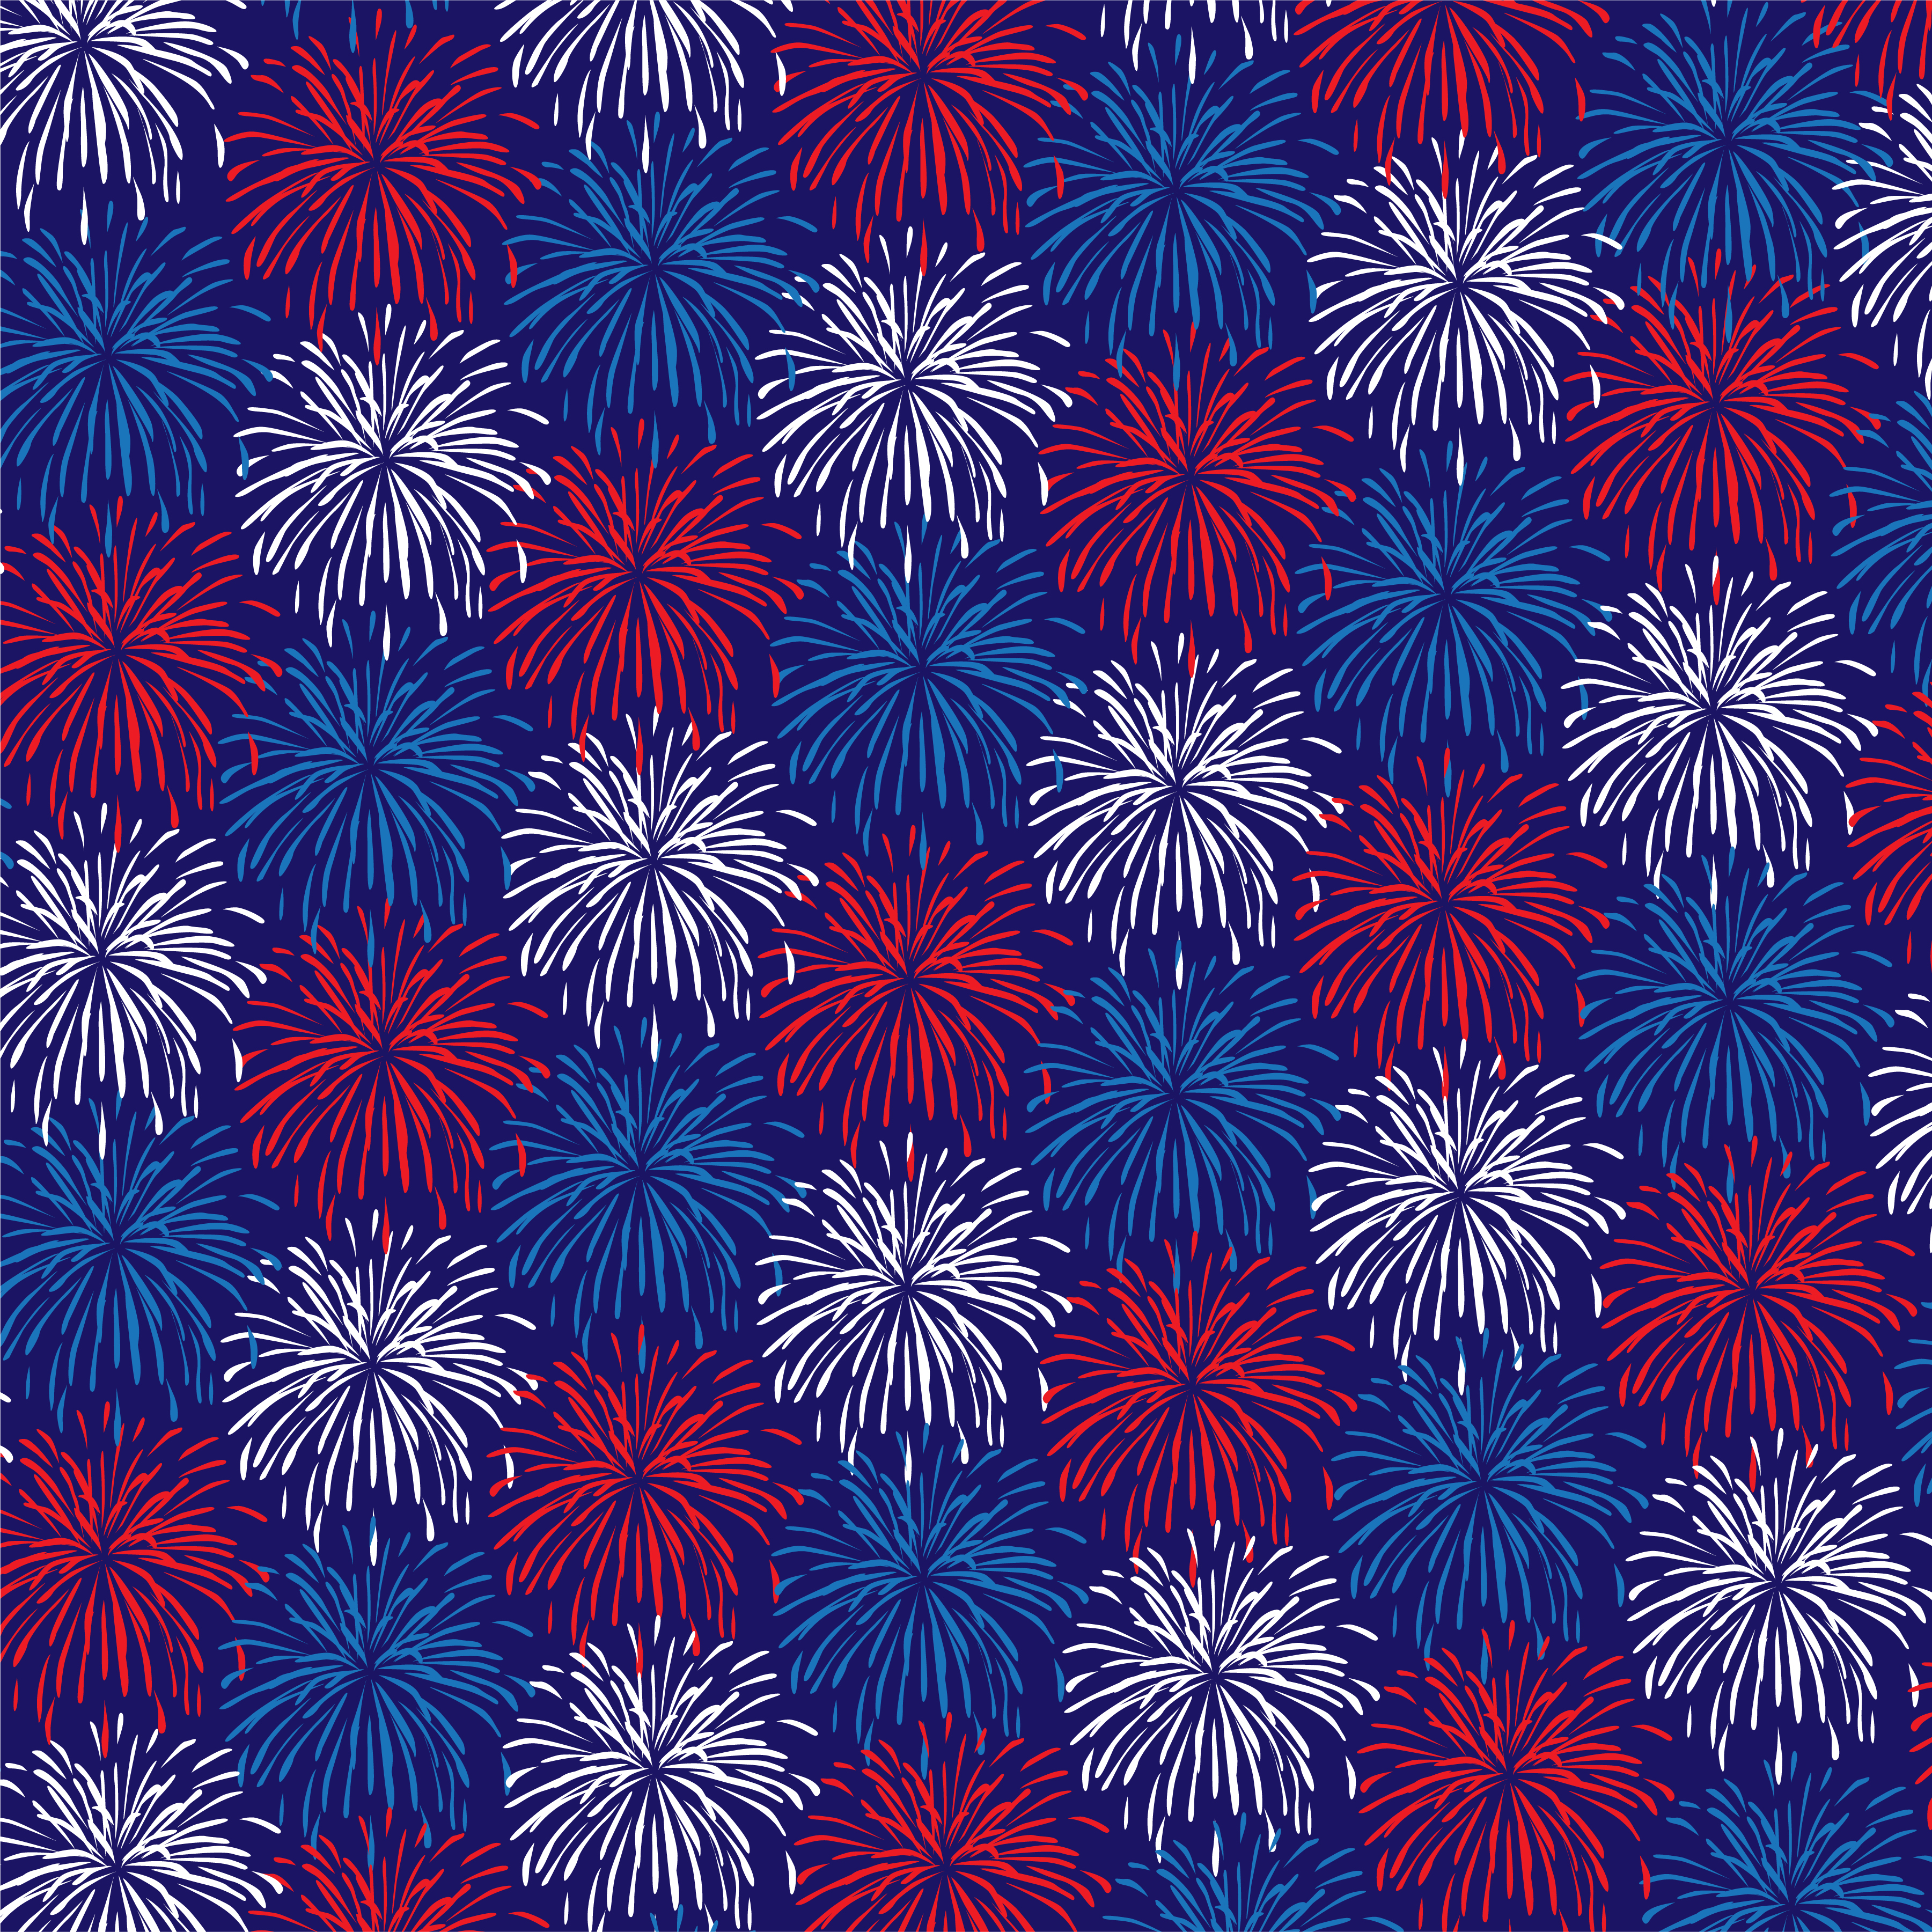 red white blue fireworks background pattern download free vectors clipart graphics vector art vecteezy